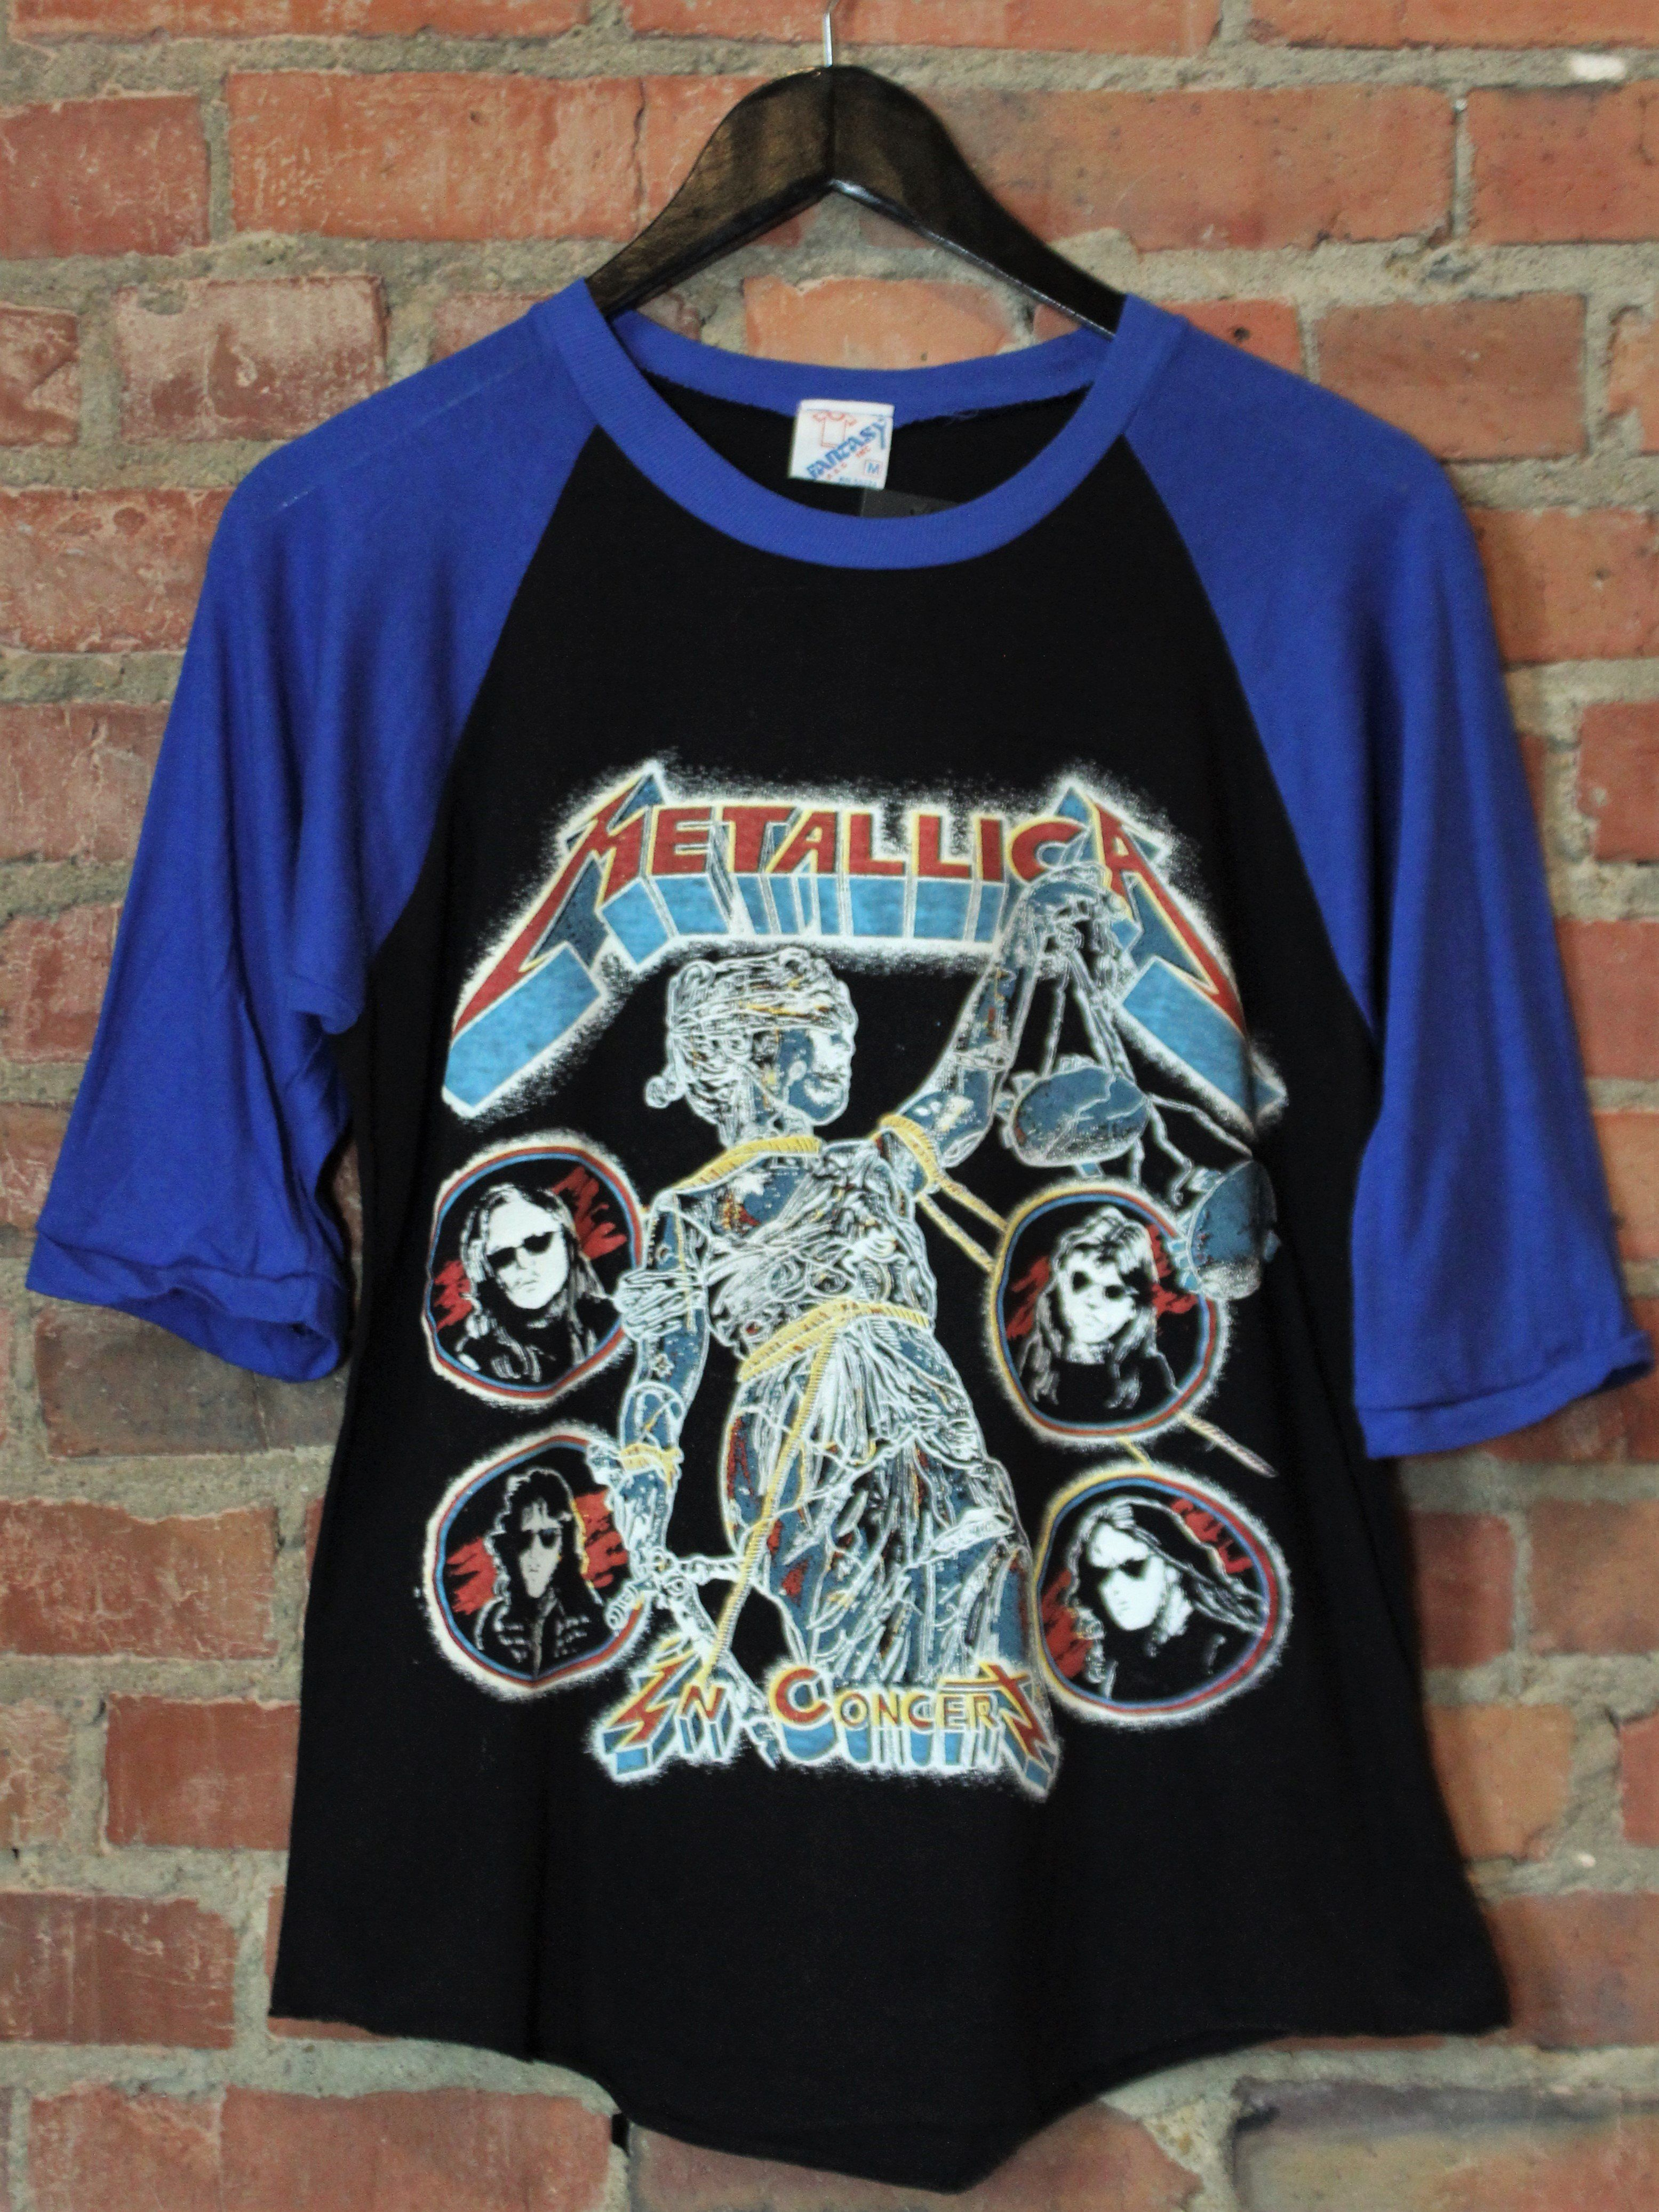 891610e9992 Vintage Metallica Concert T Shirt 1988 And Justice For All Bootleg ...